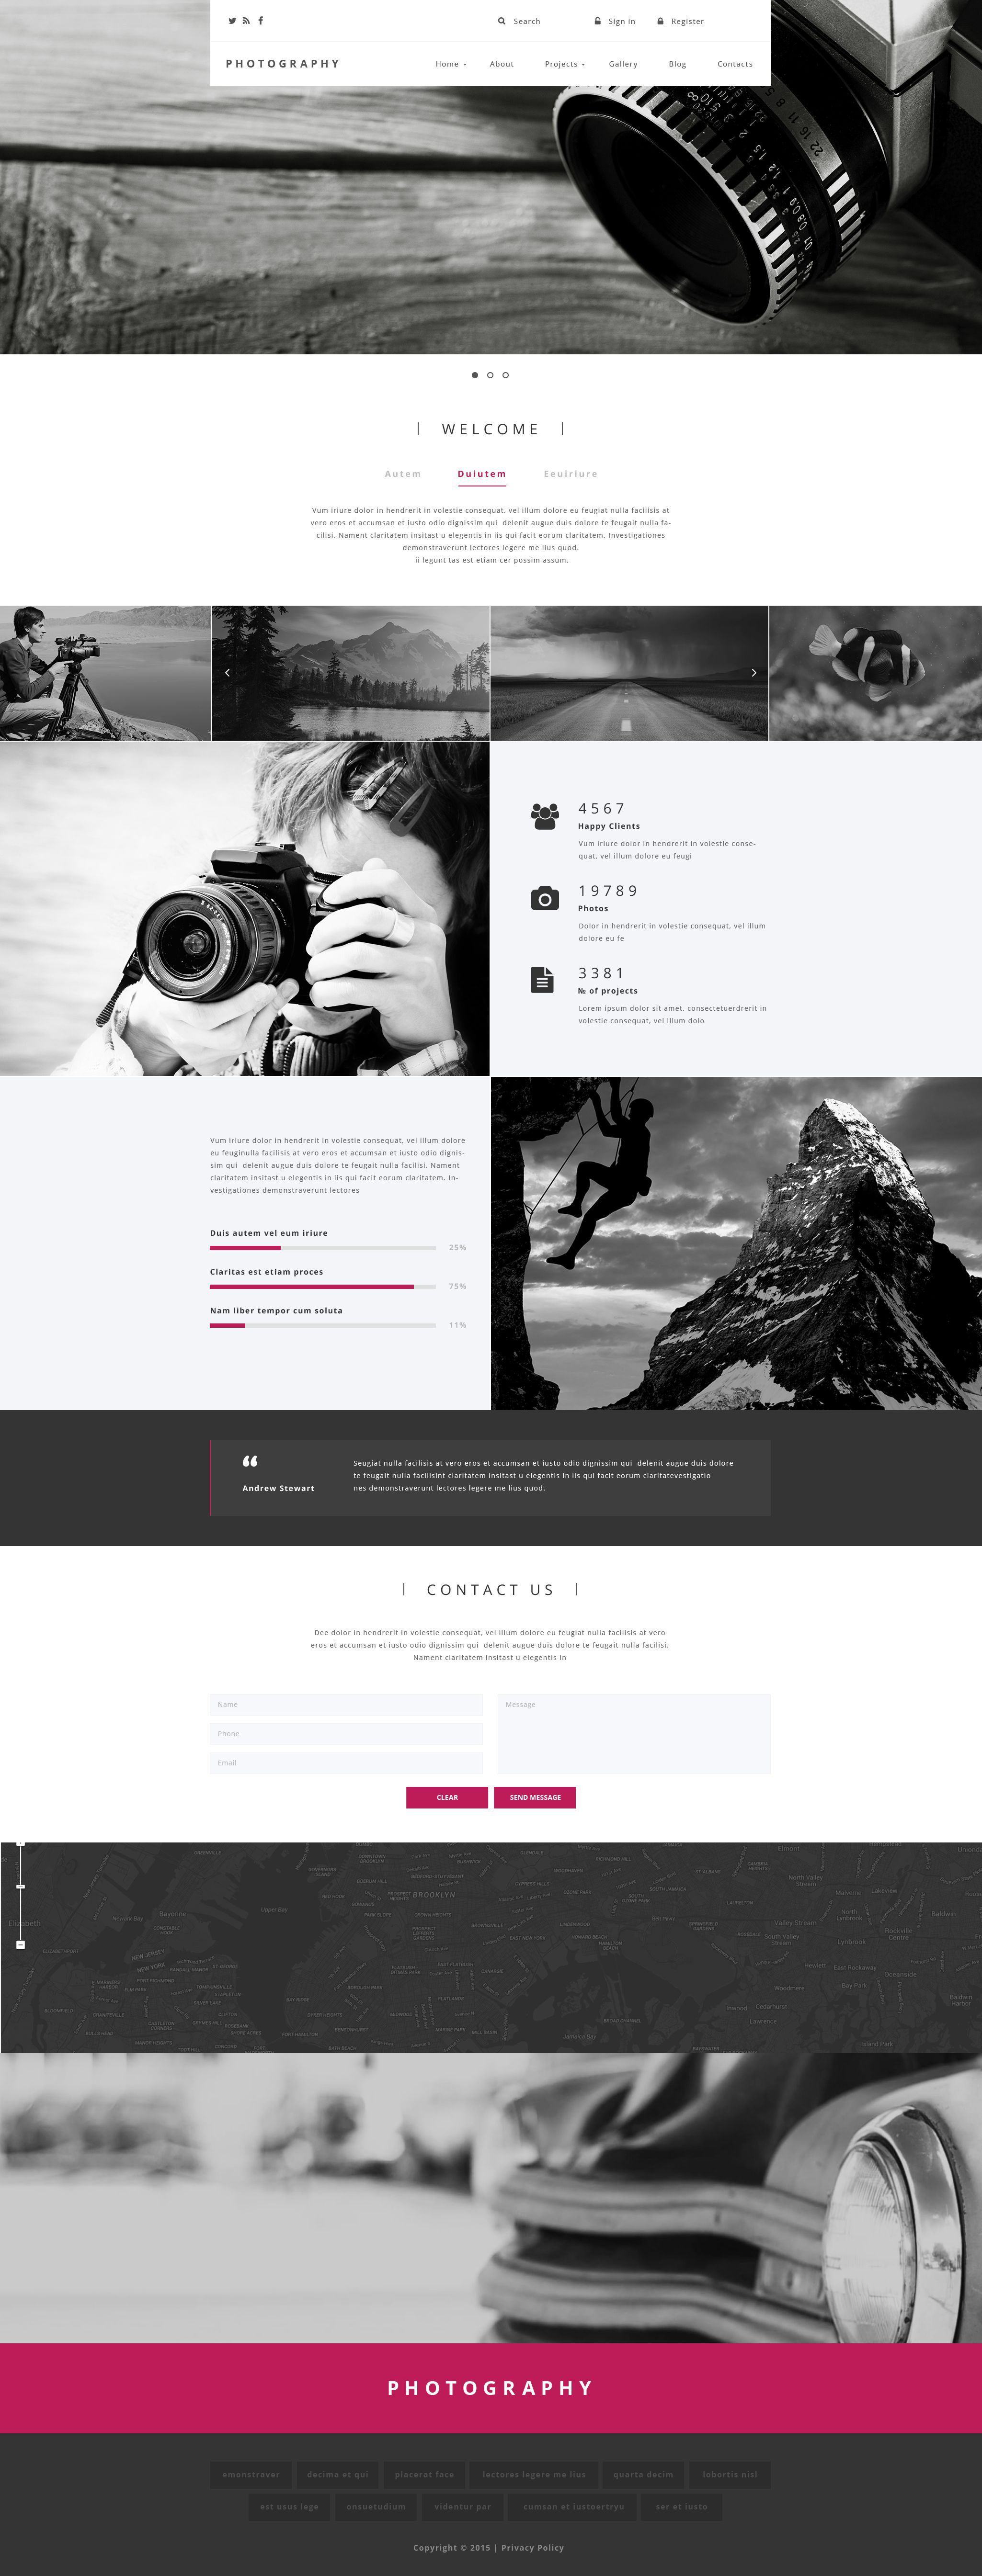 Photography Template Drupal №55089